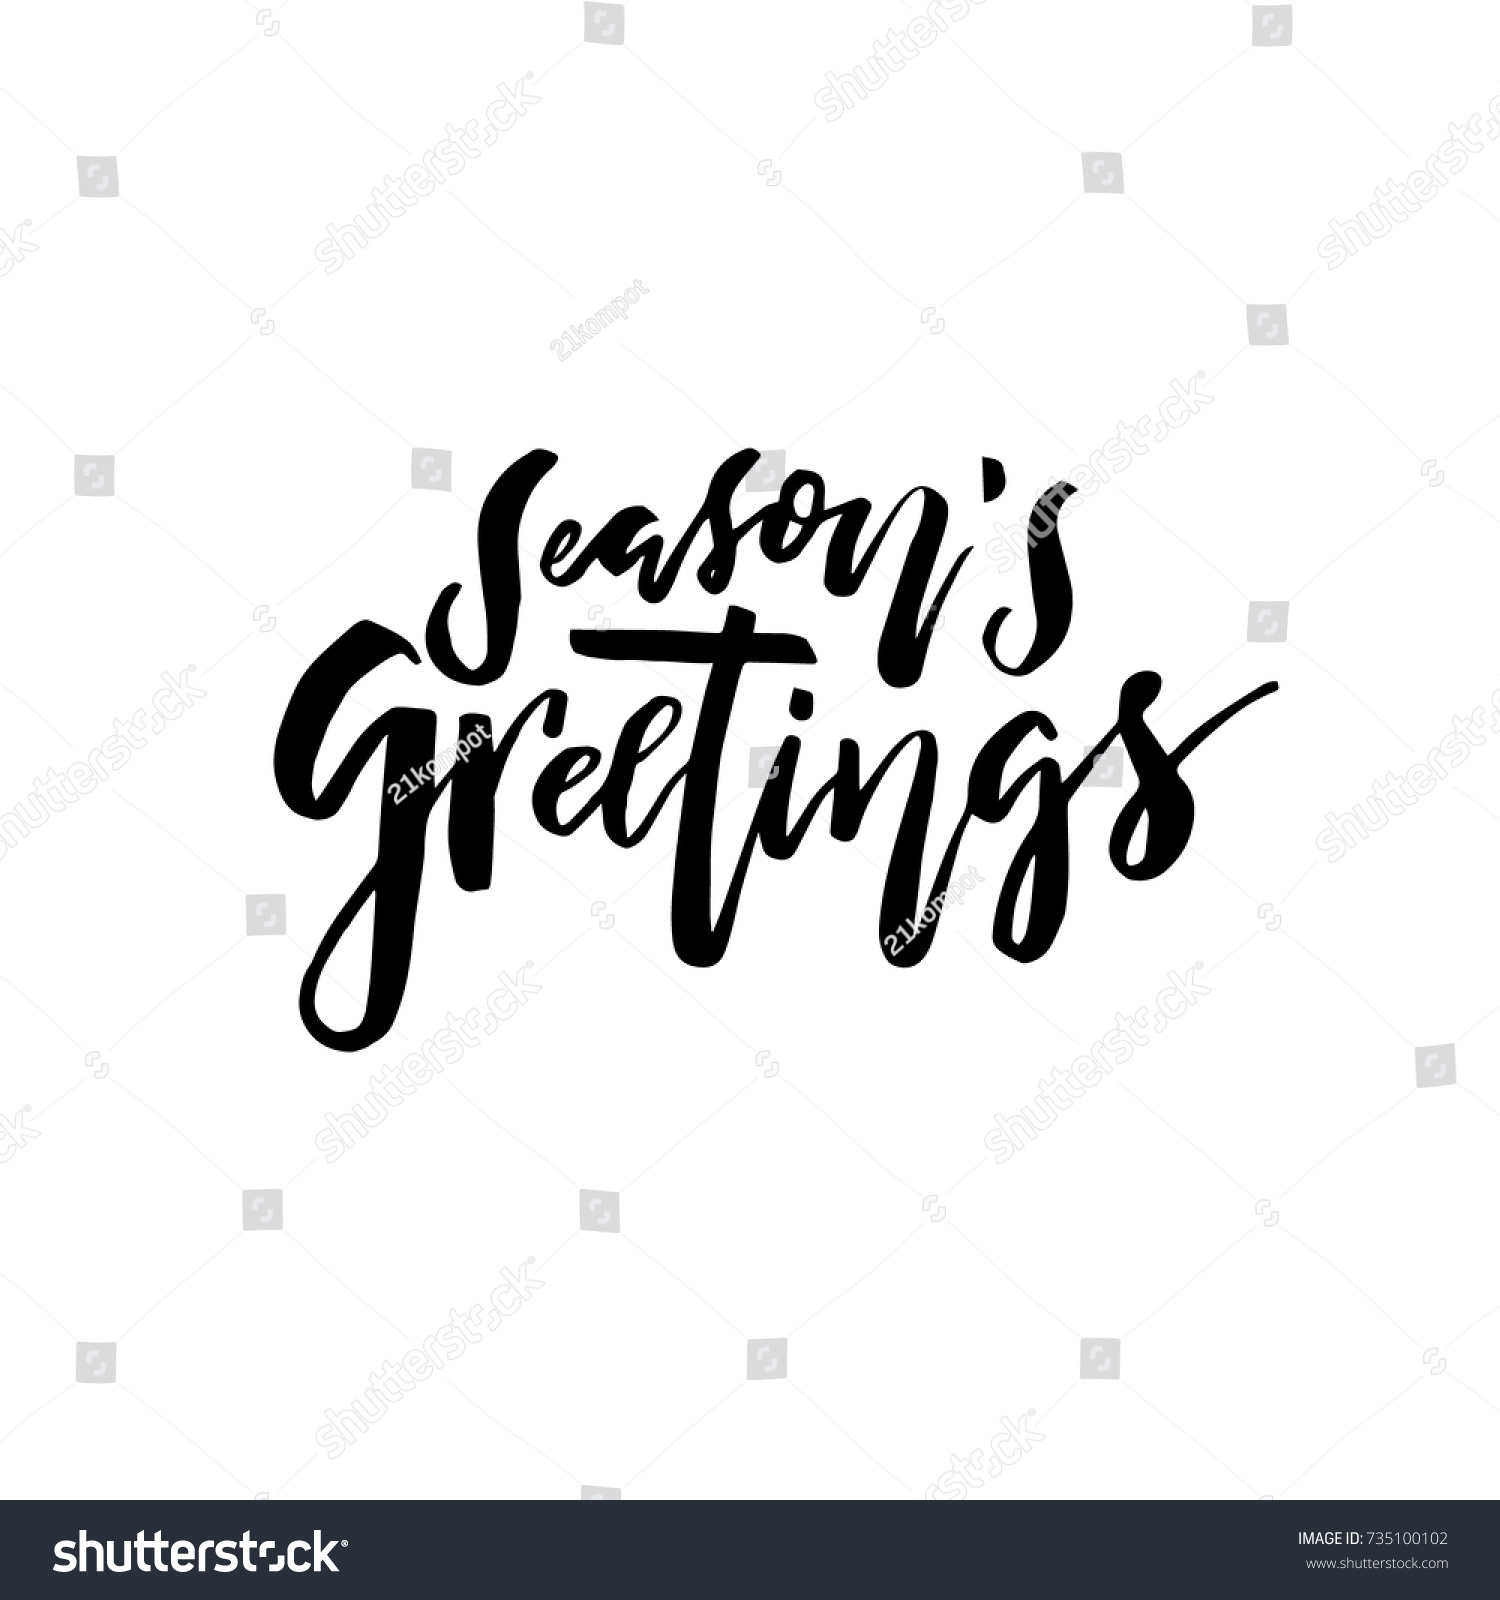 Merry christmas card calligraphy seasons greetings stock vector merry christmas card with calligraphy seasons greetings template for congratulations housewarming posters kristyandbryce Images